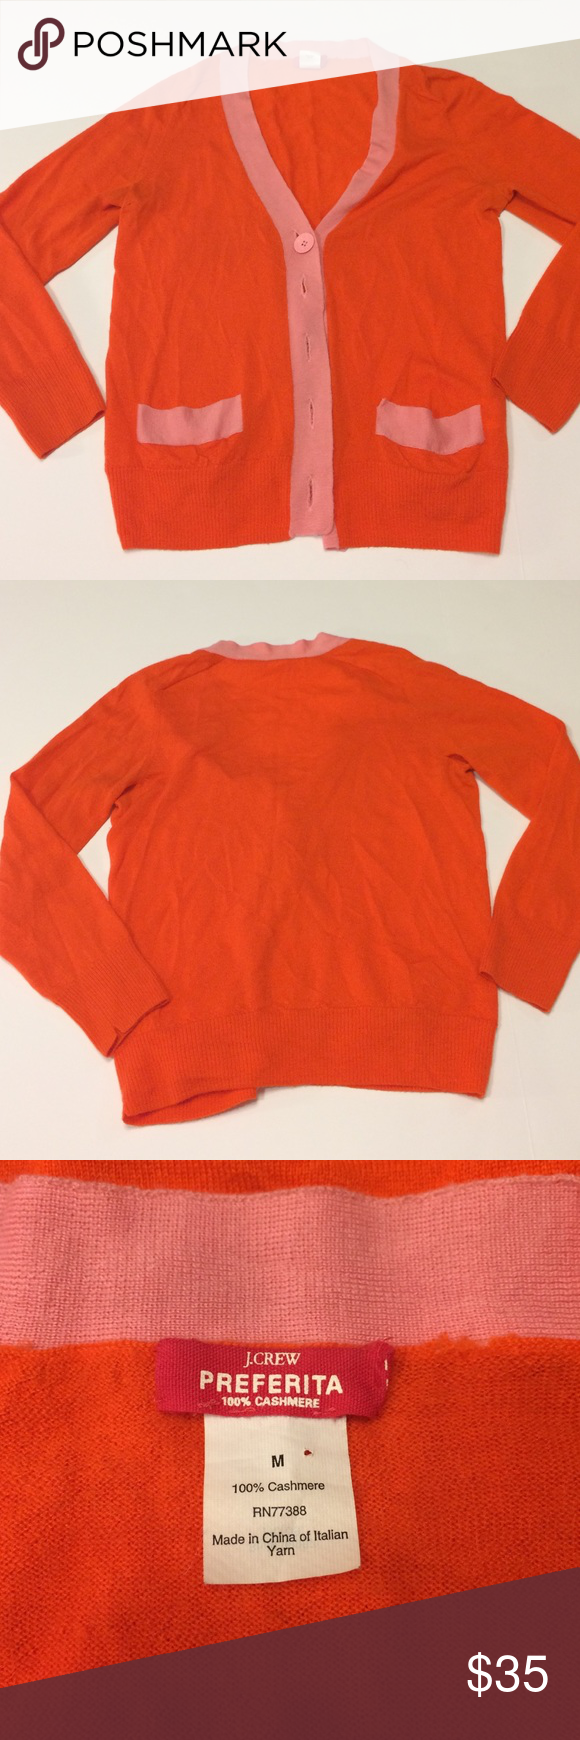 J. Crew cashmere sweater-size m | Sweater cardigan, There and The ...